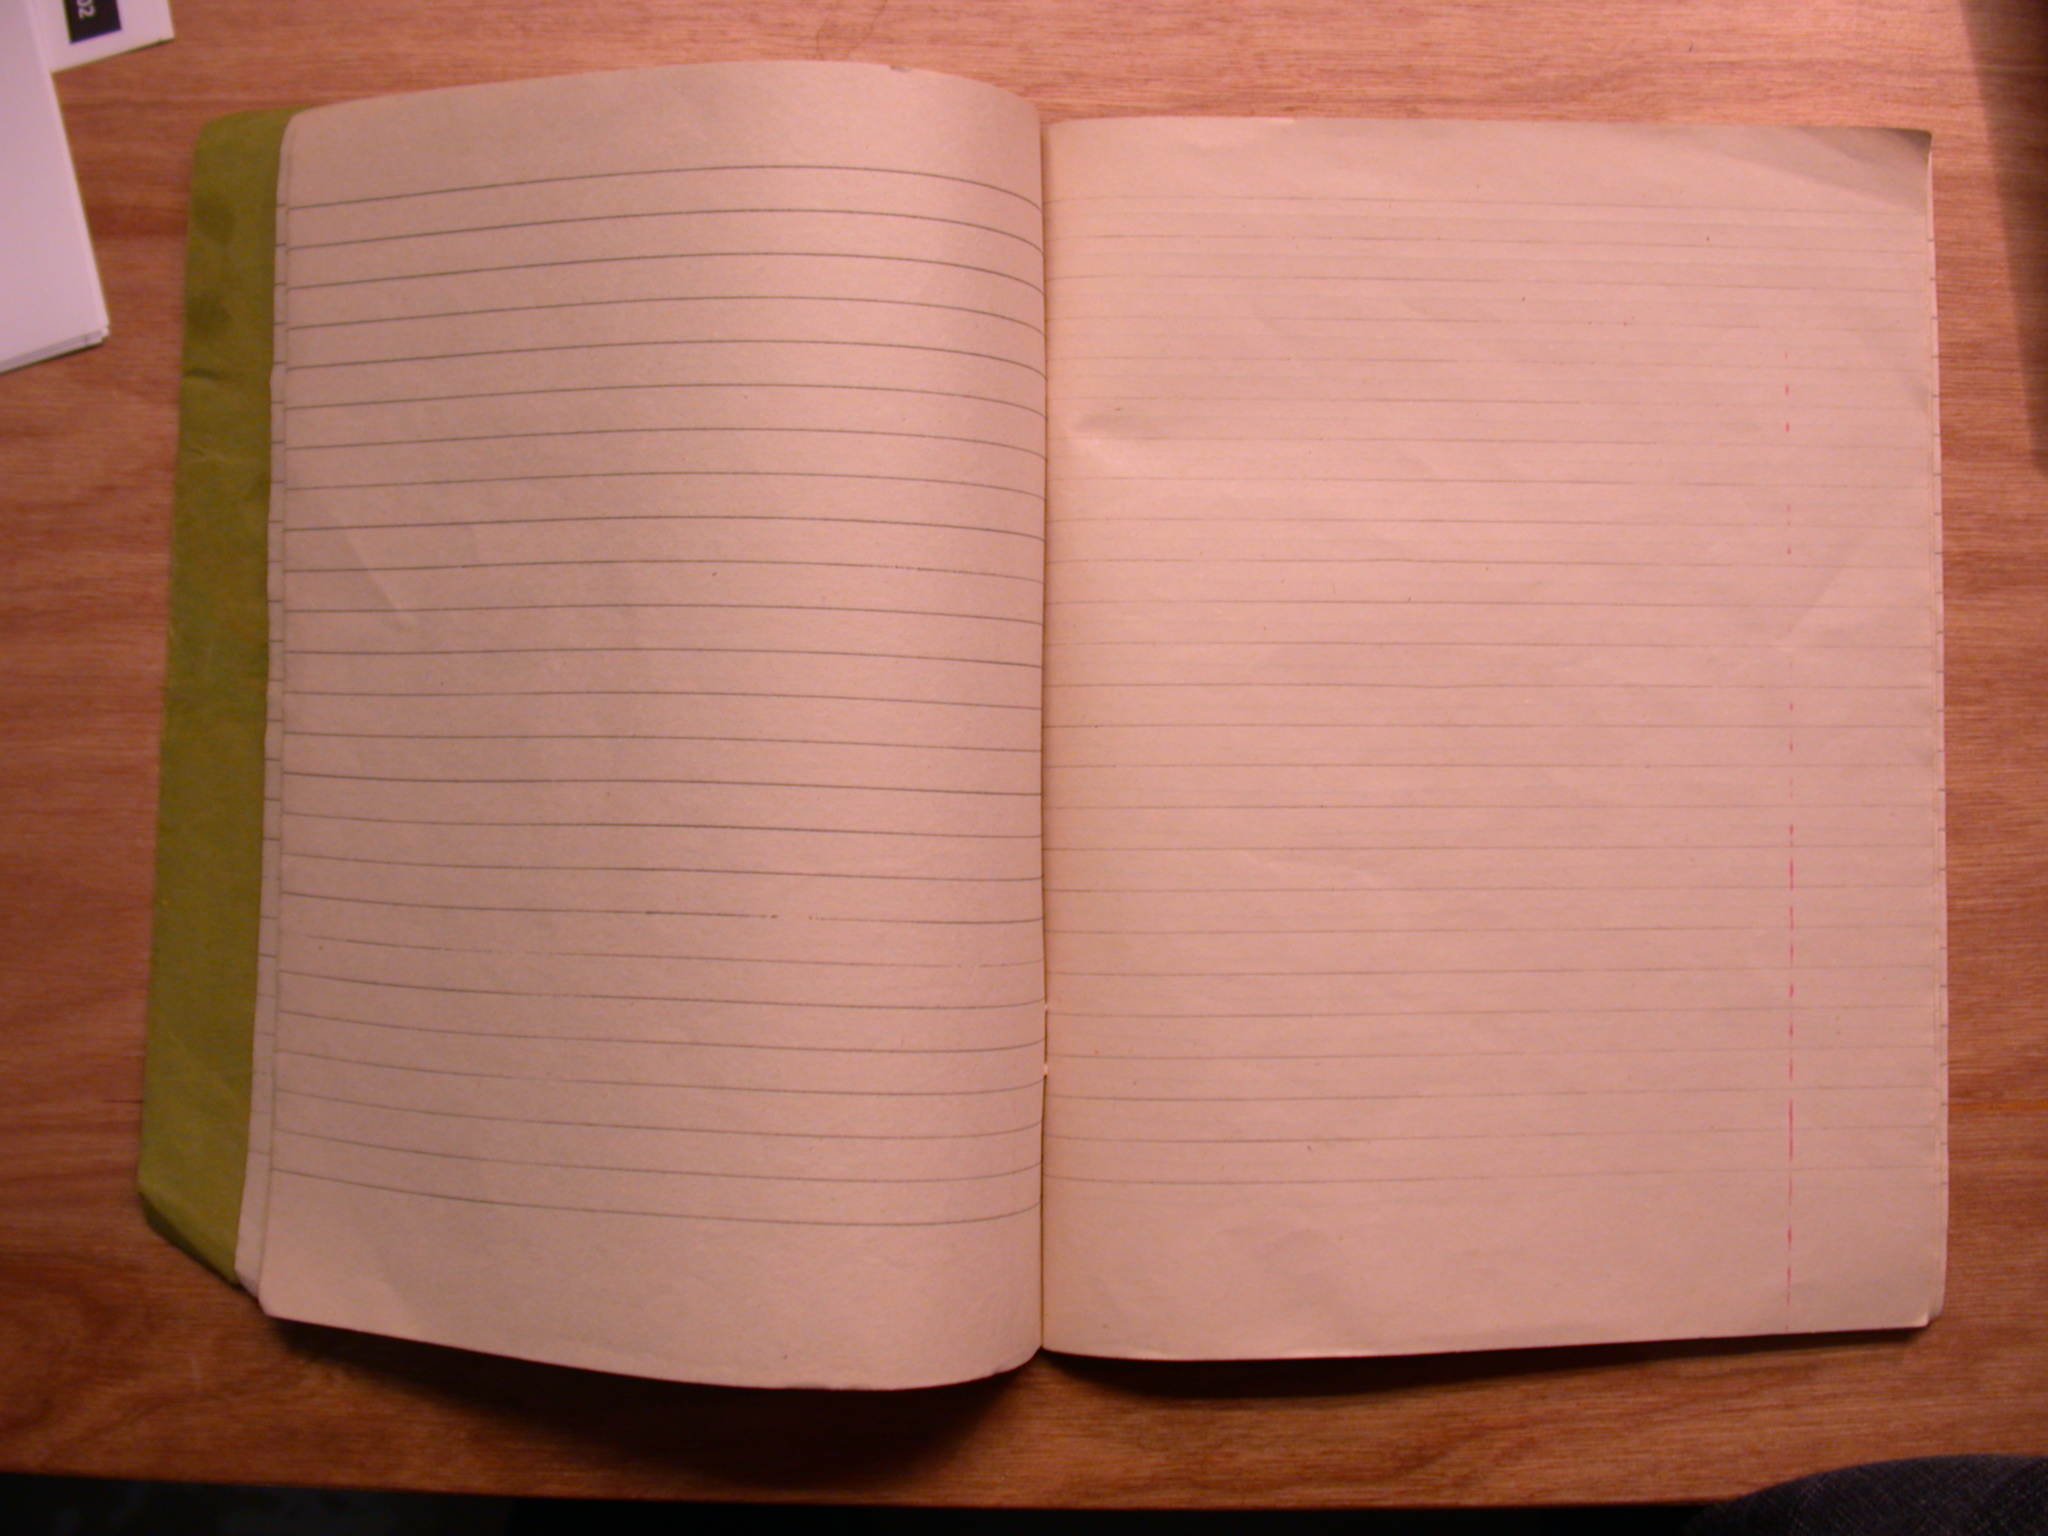 book cahier notebook exercise-book lines blank page pages paper royalty free